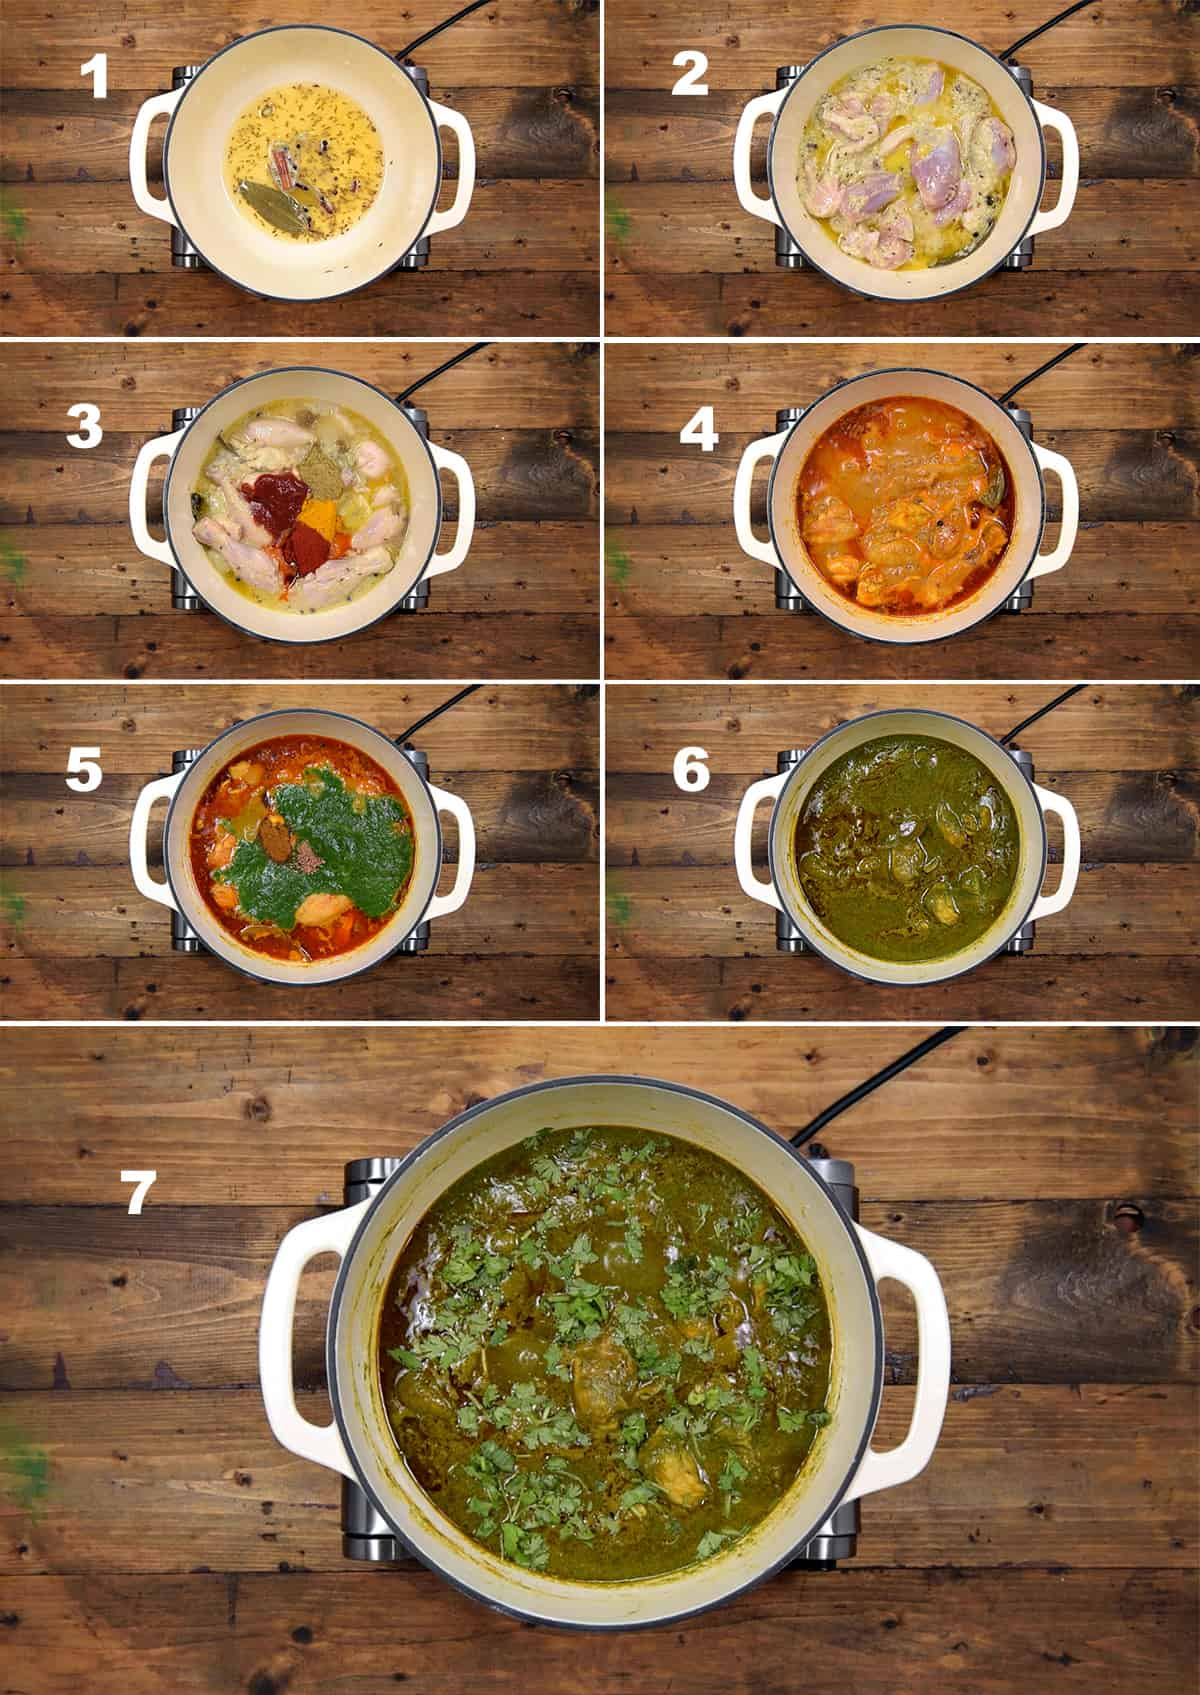 Step by step picture collage showing the making of palak chicken in pot on stove top.